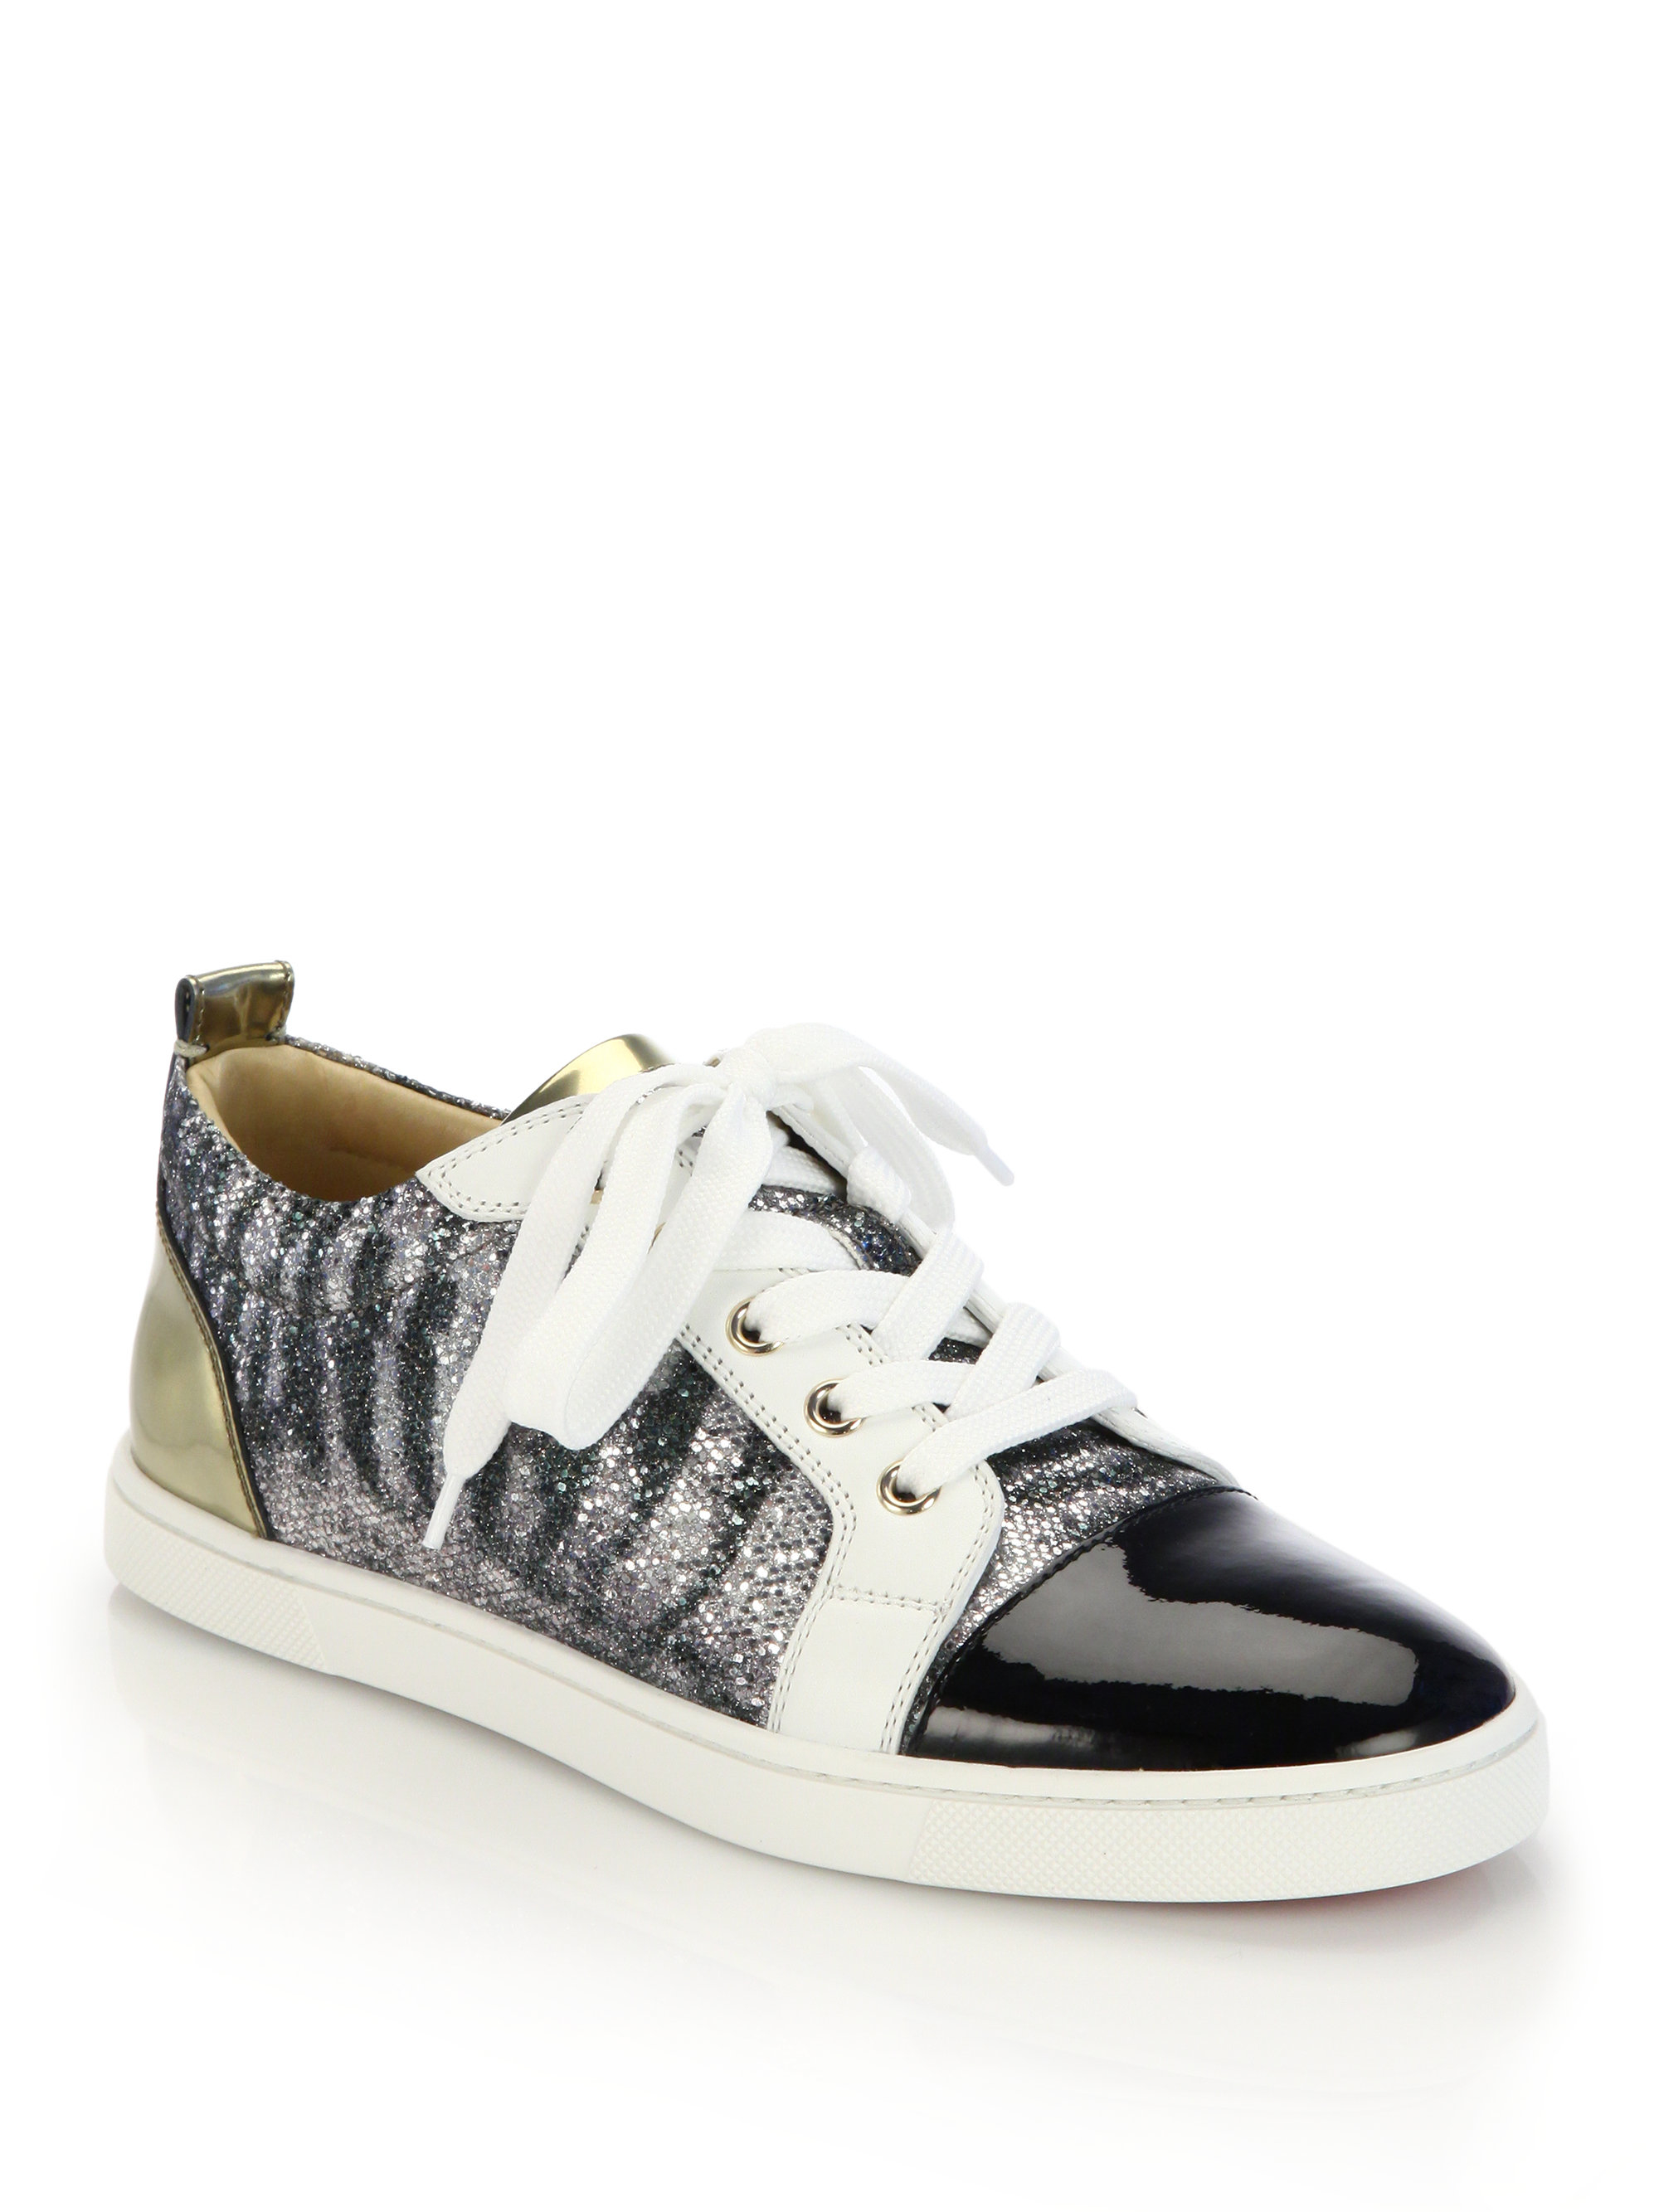 christian louboutin embellished low top sneakers shoes. Black Bedroom Furniture Sets. Home Design Ideas